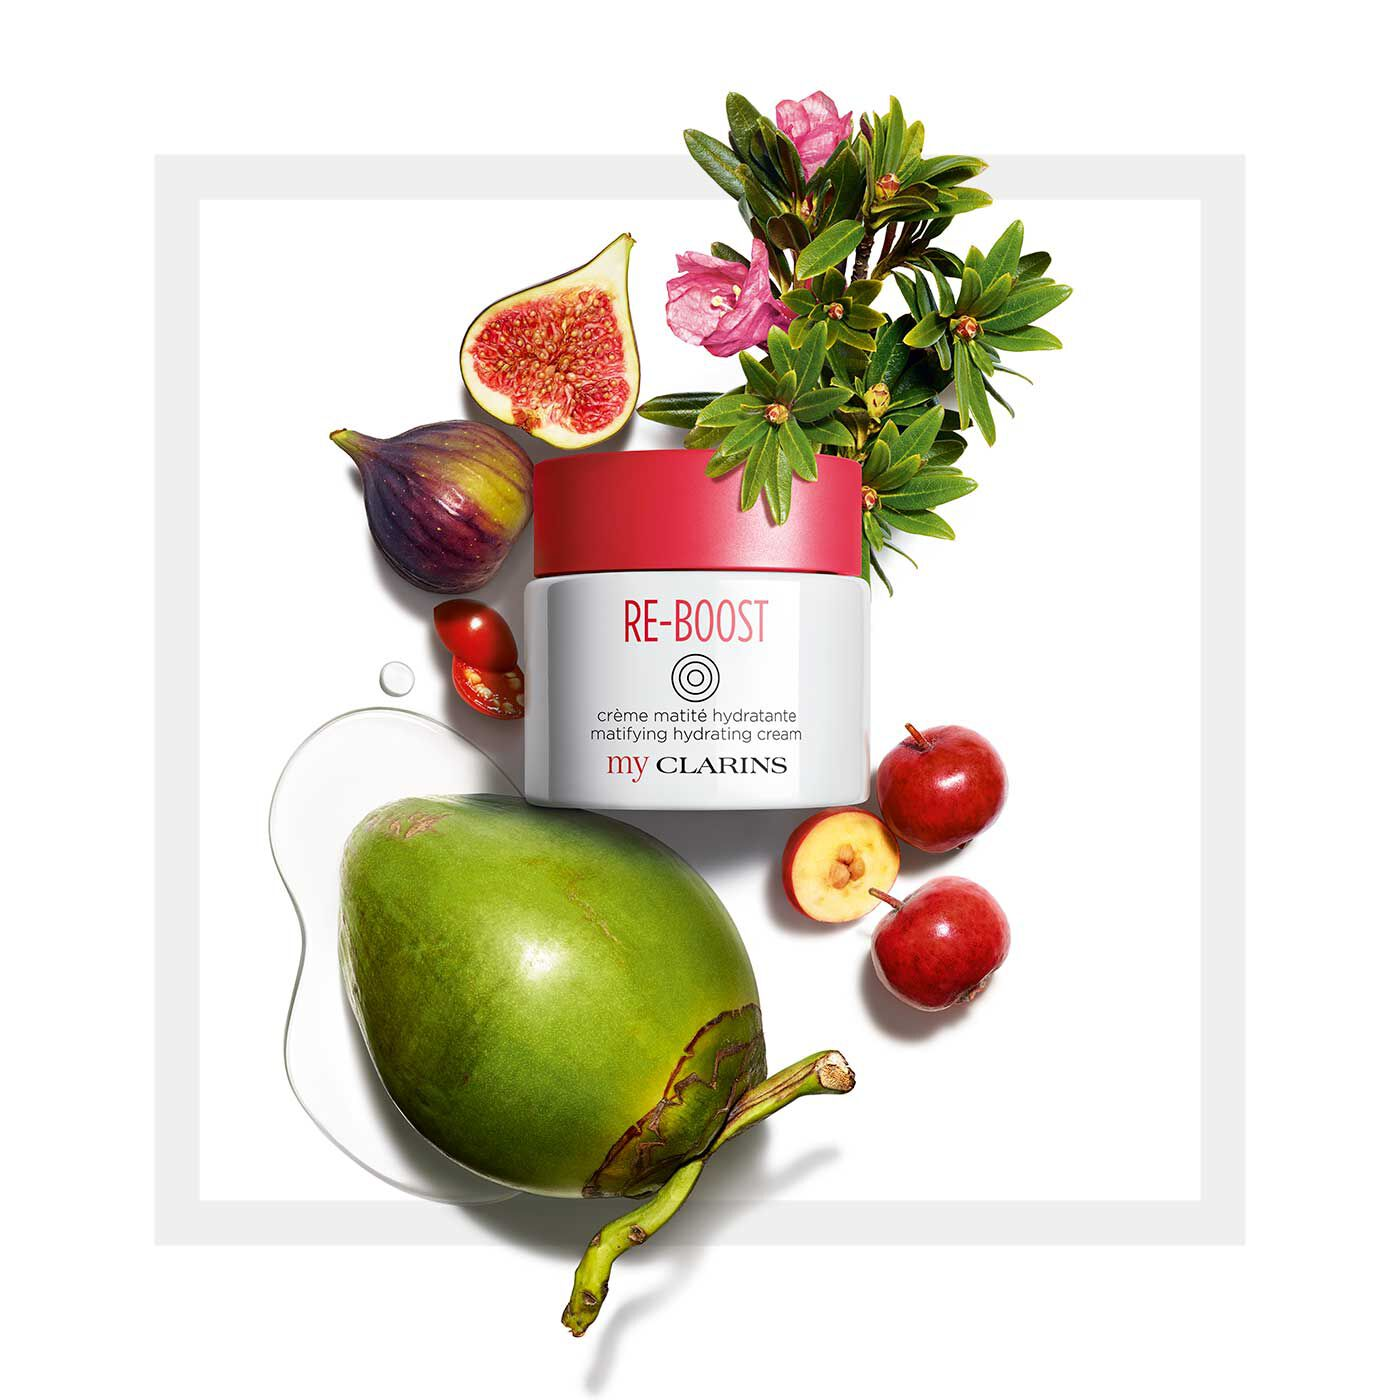 My Clarins RE-BOOST Hydrating Cream for oily skin